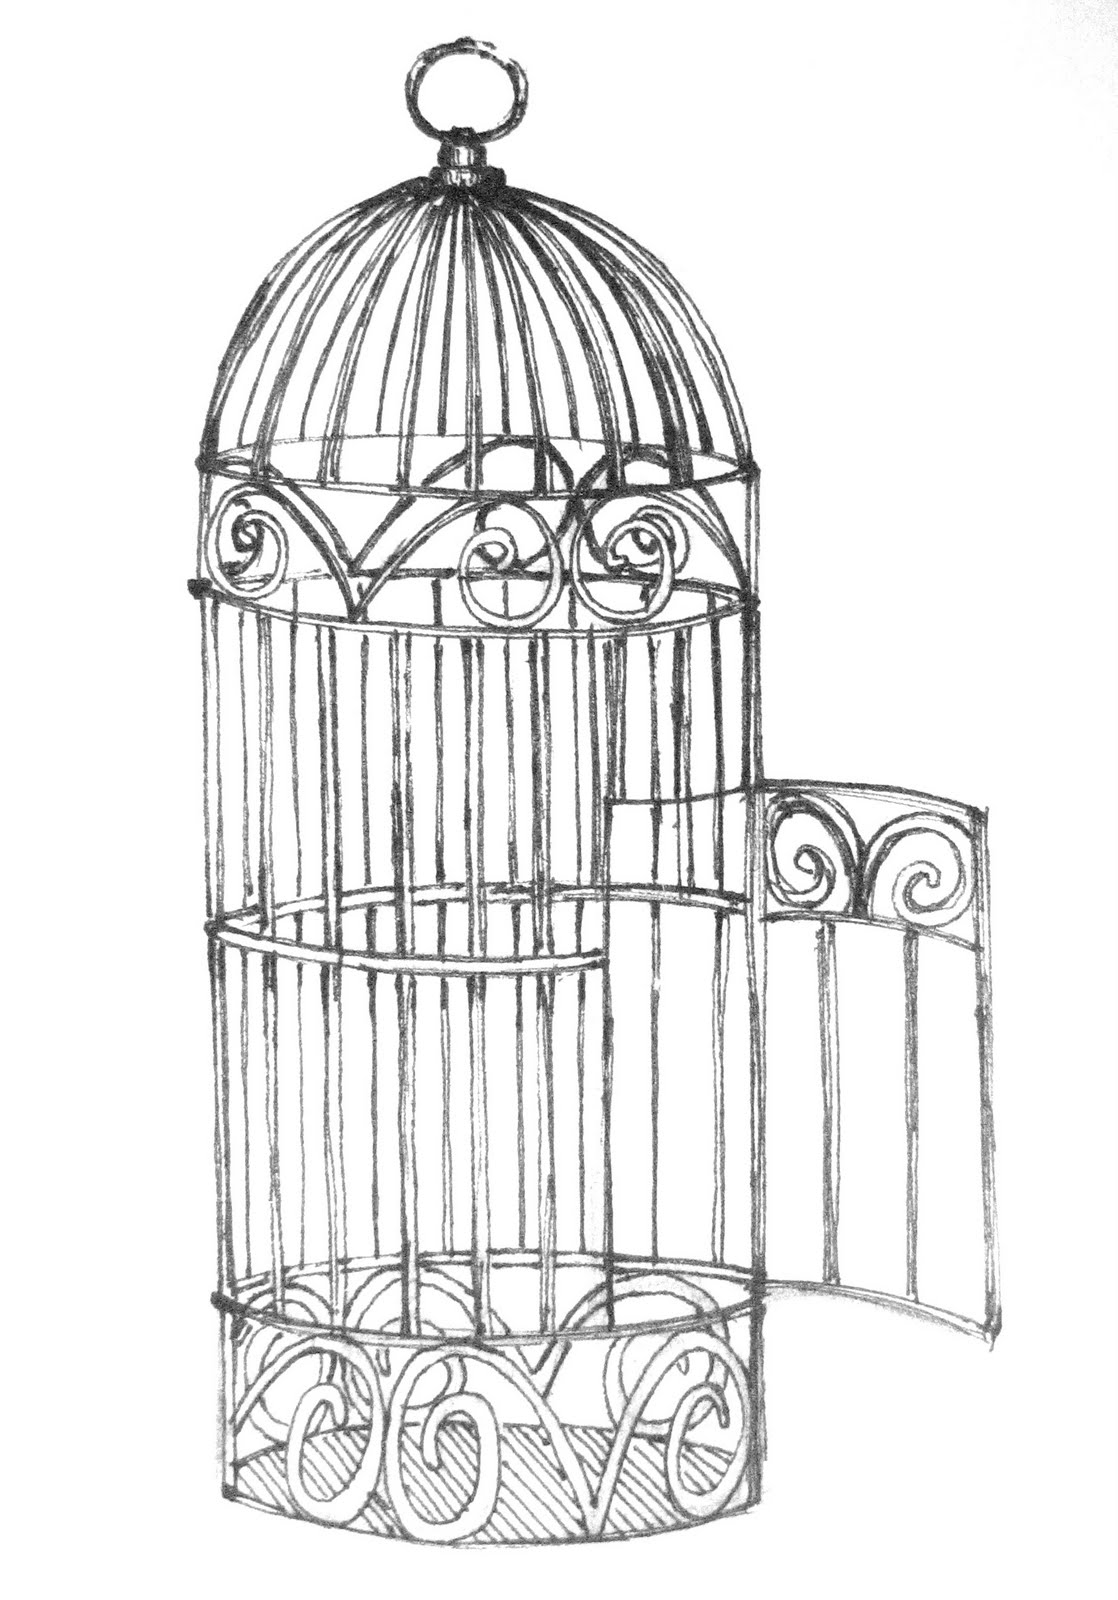 Antique bird cage drawing - photo#39